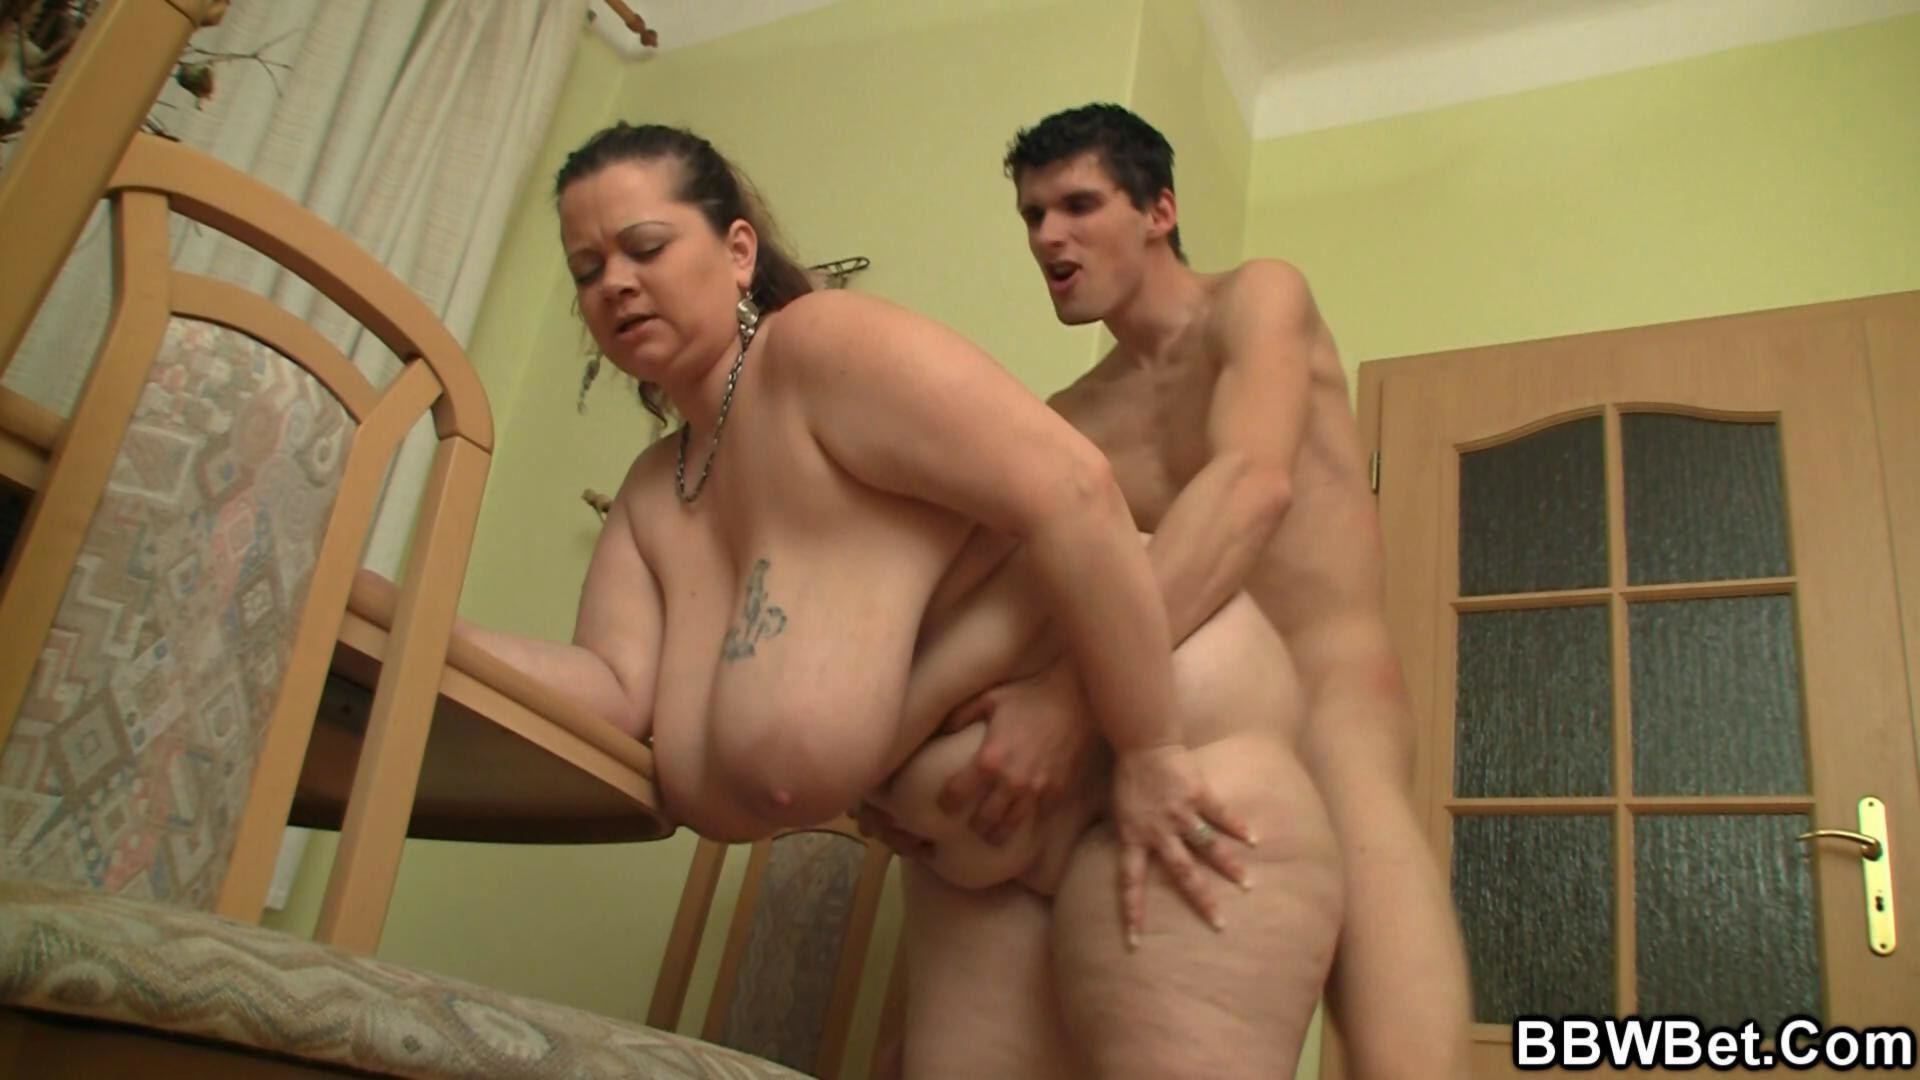 Bigcocked guy bangs big belly plumper from behind 8